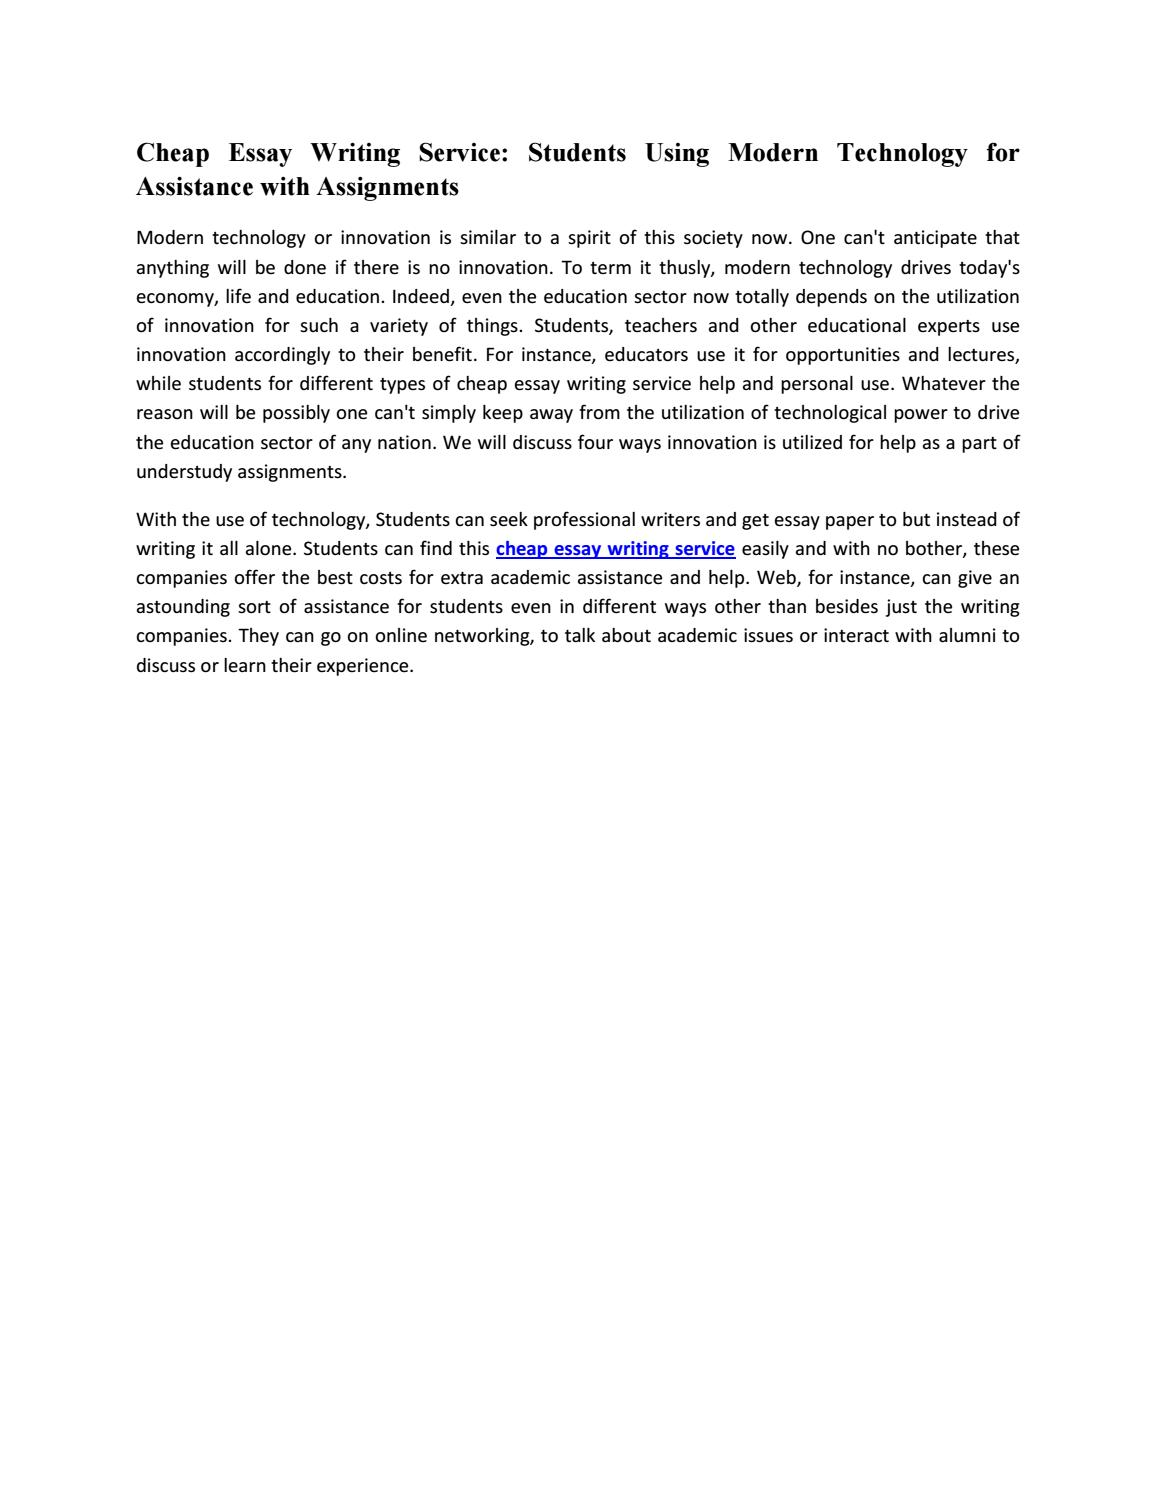 020 Essay Example Page 1 About Modern Wonderful Technology Pros And Cons In Everyday Life 2050 Full